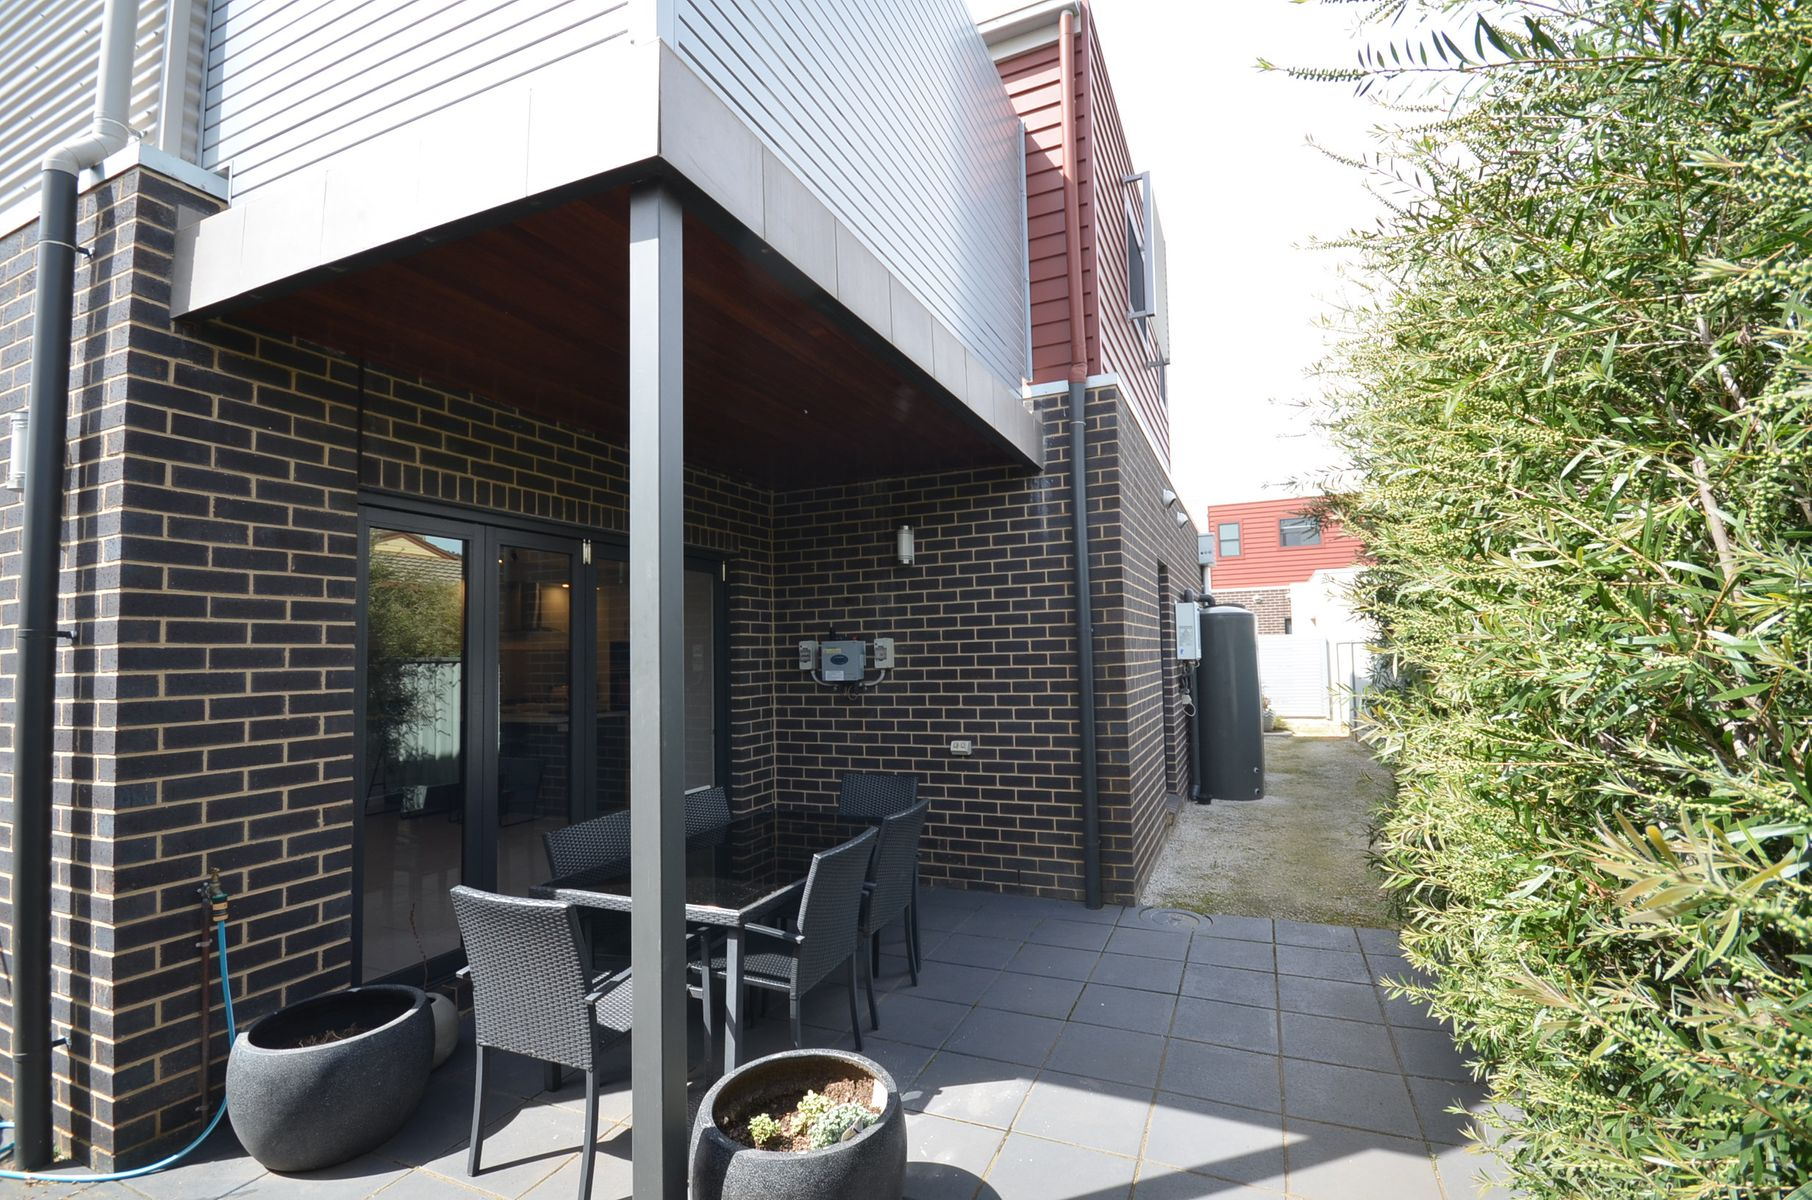 3/10 Farrington Street, Kennington, VIC 3550